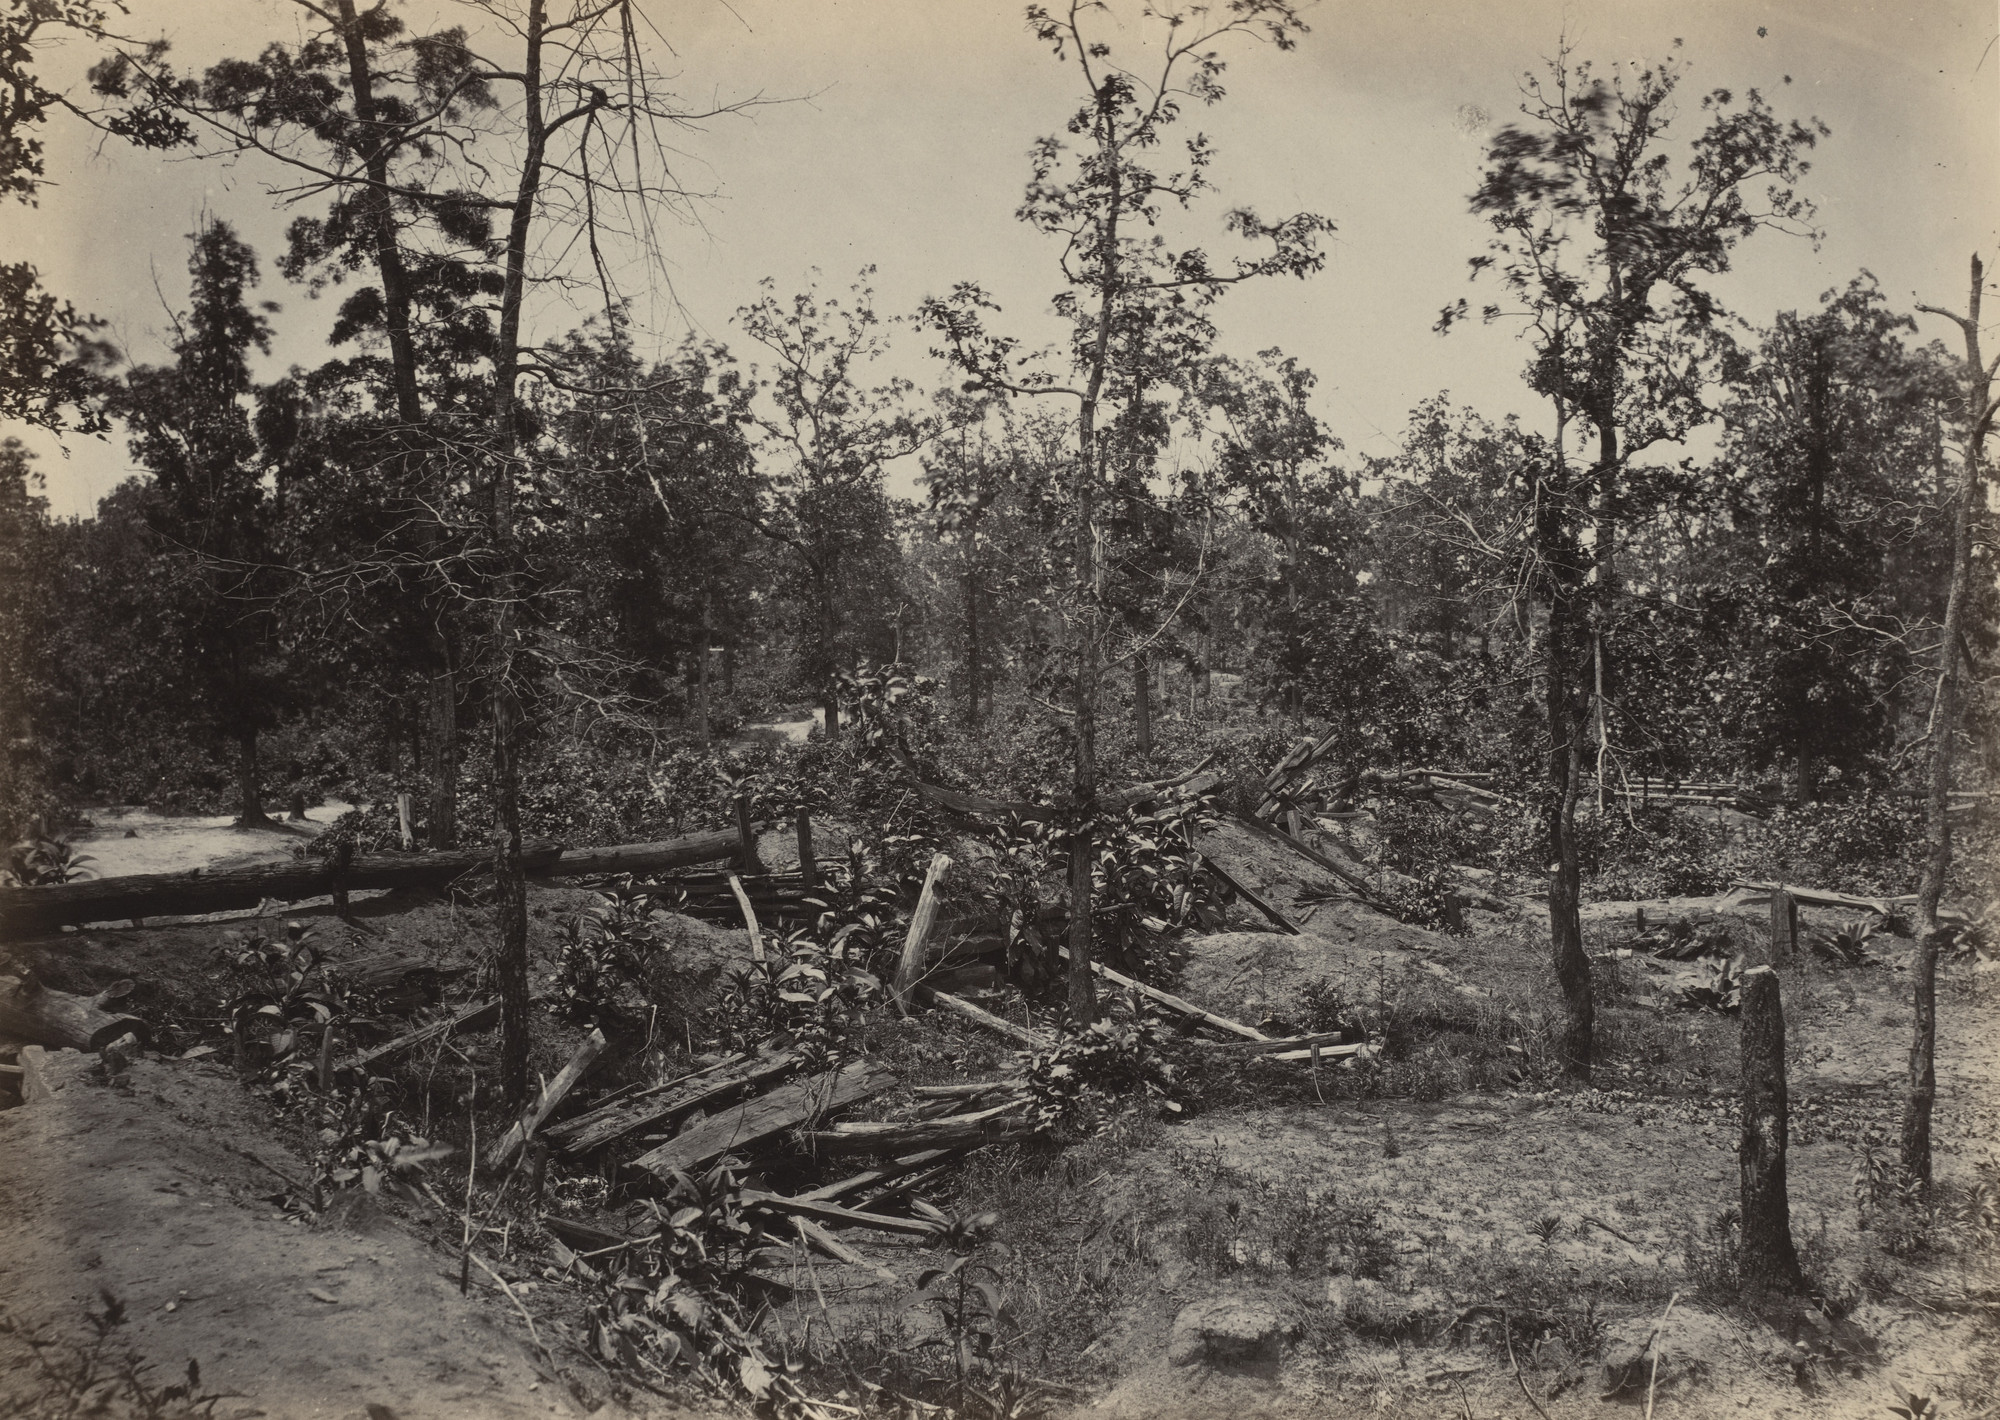 George Barnard. Battlefield of Atlanta, 22nd July, 1864, No. 1 from the album Photographic Views of Sherman's Campaign. 1864